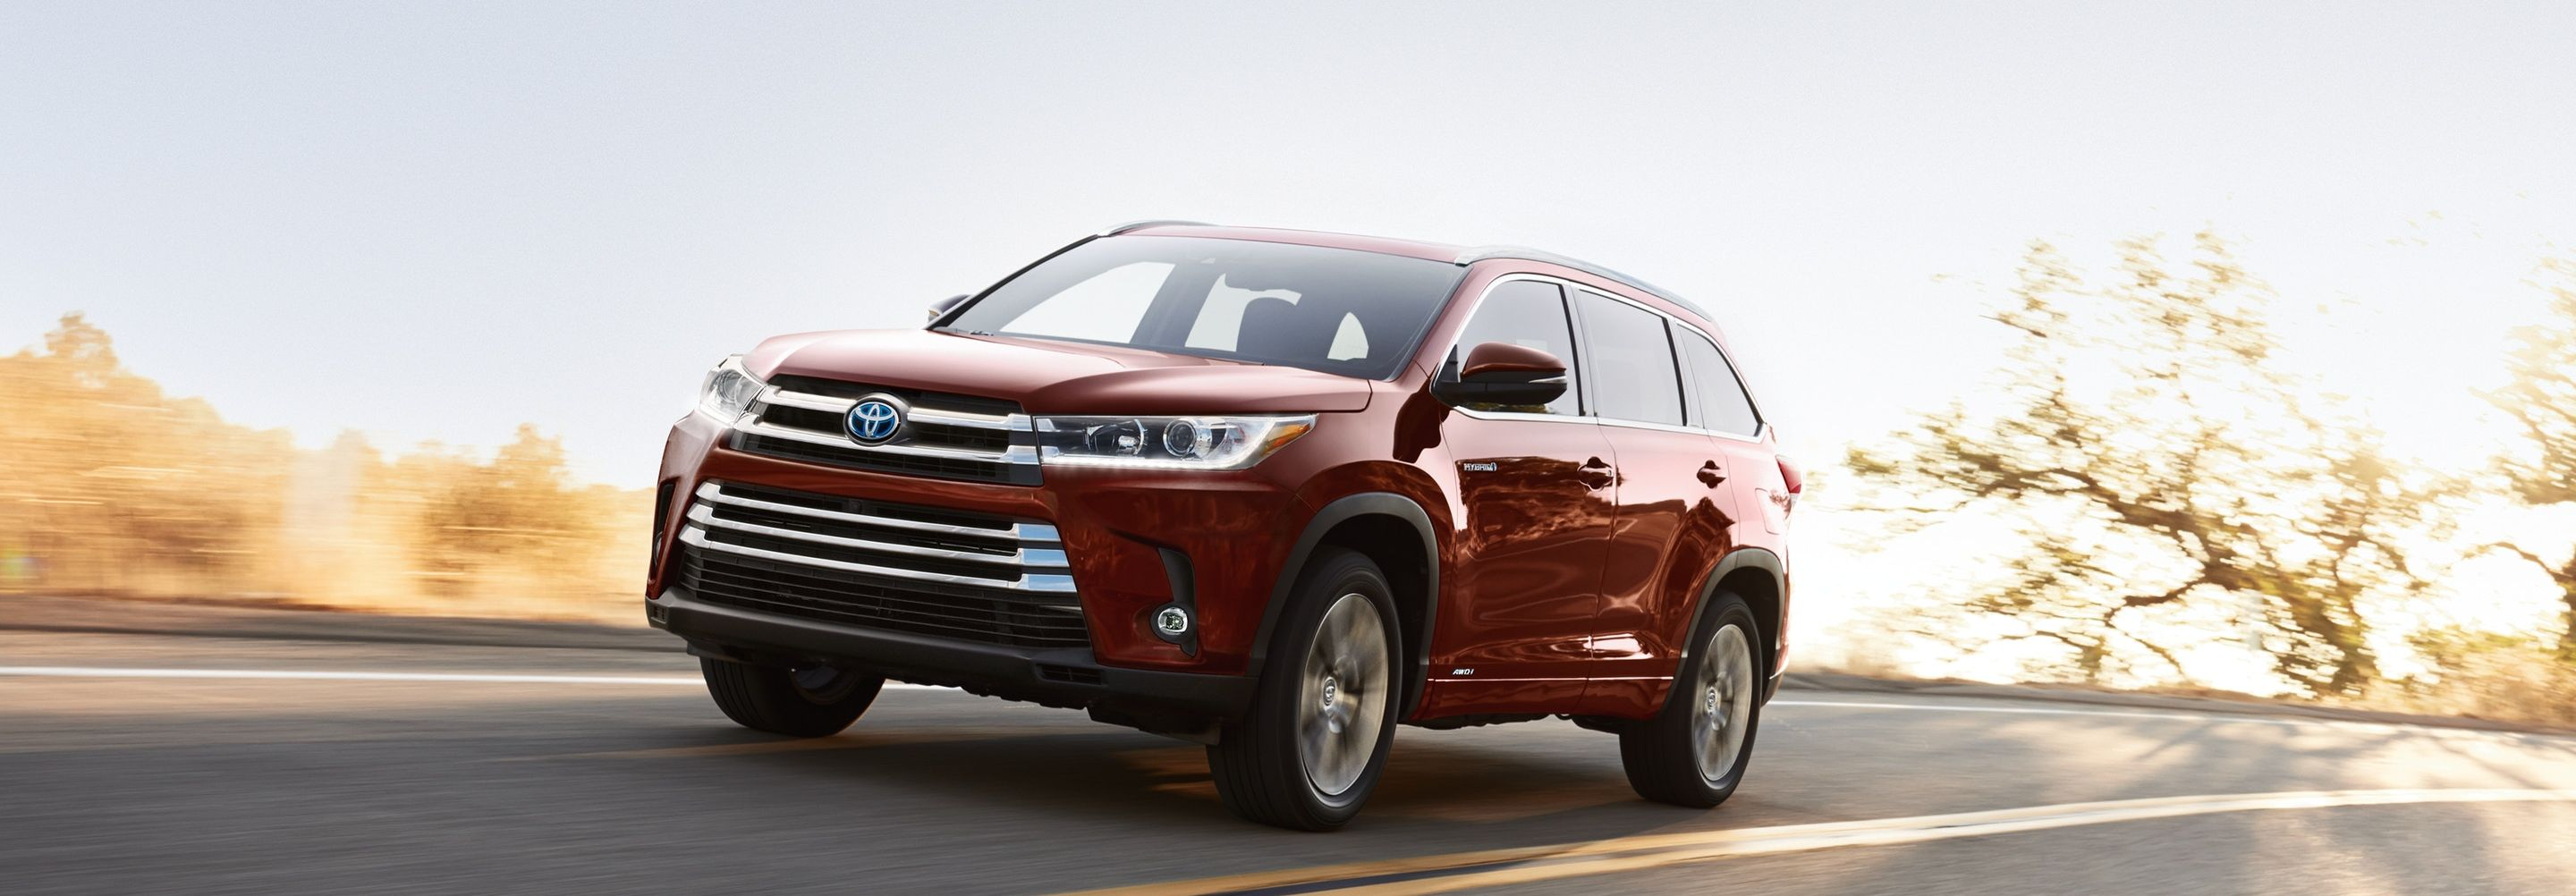 2019 Toyota Highlander Leasing in Kansas City, MO, 64114